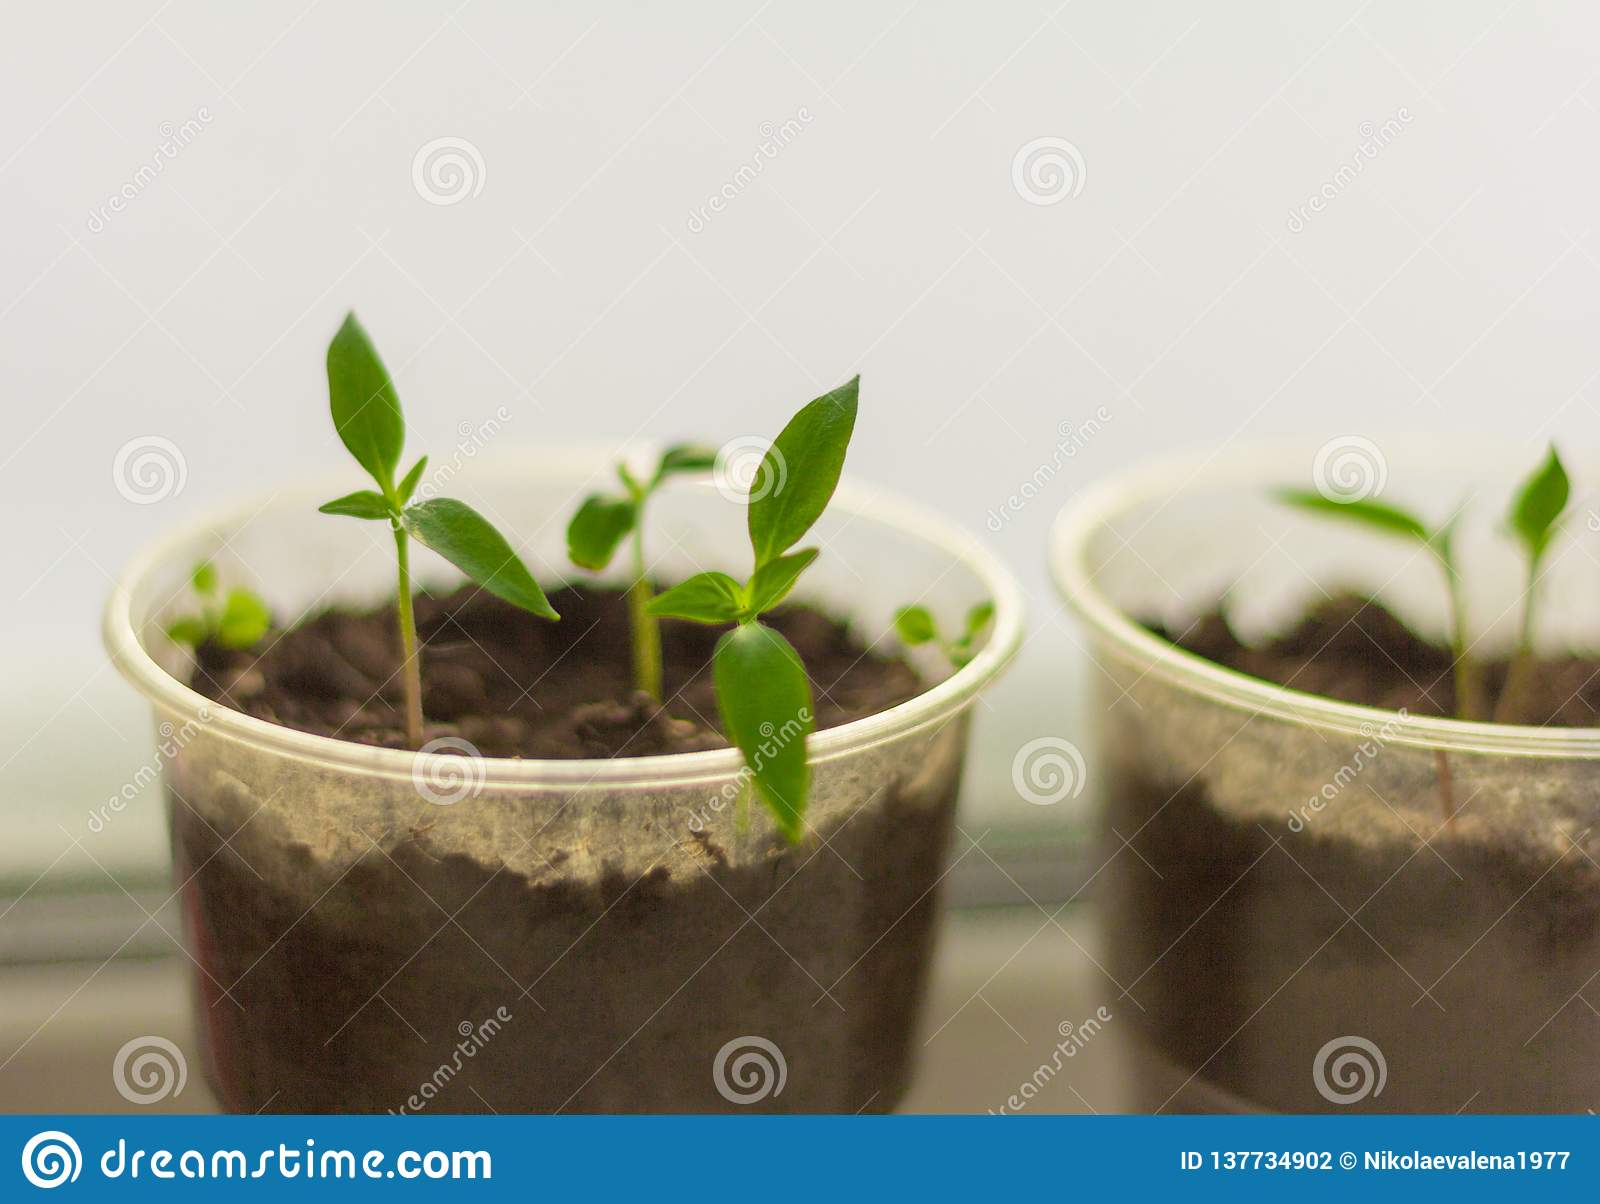 Seedlings,young shoots of pepper